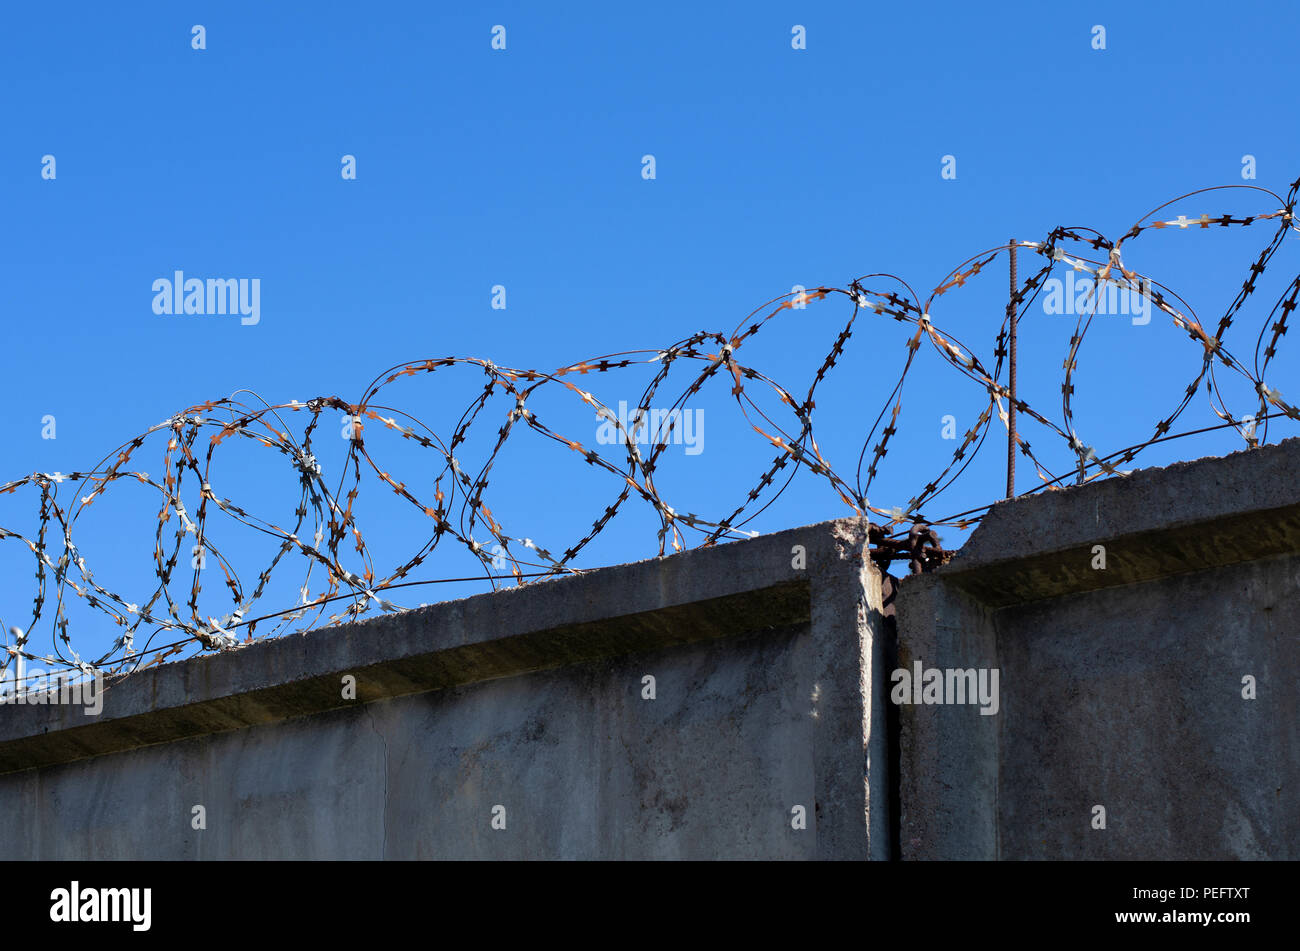 Coils of barbed wire with spikes over the concrete fence in the background blue sky - Stock Image